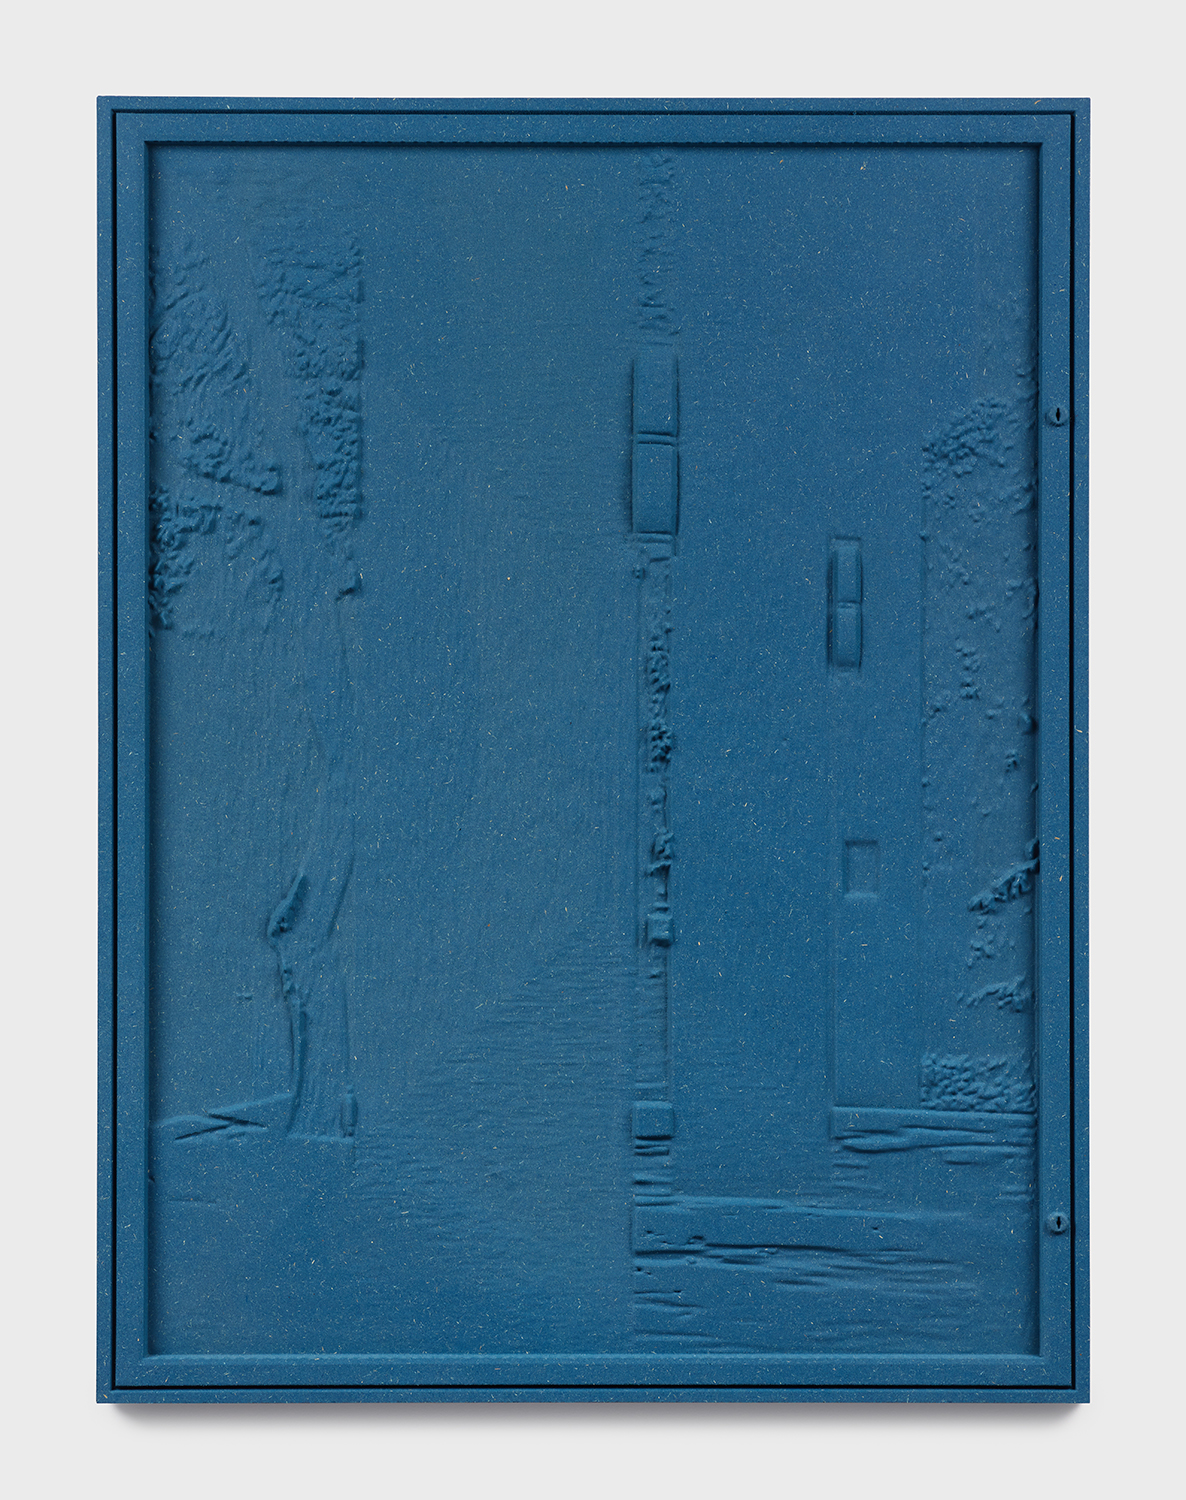 Jennifer Bolande, Bulletin Board (with tree and columns), 2018, Pigmented high density composite, 34.25h x 26w x 1.50d in